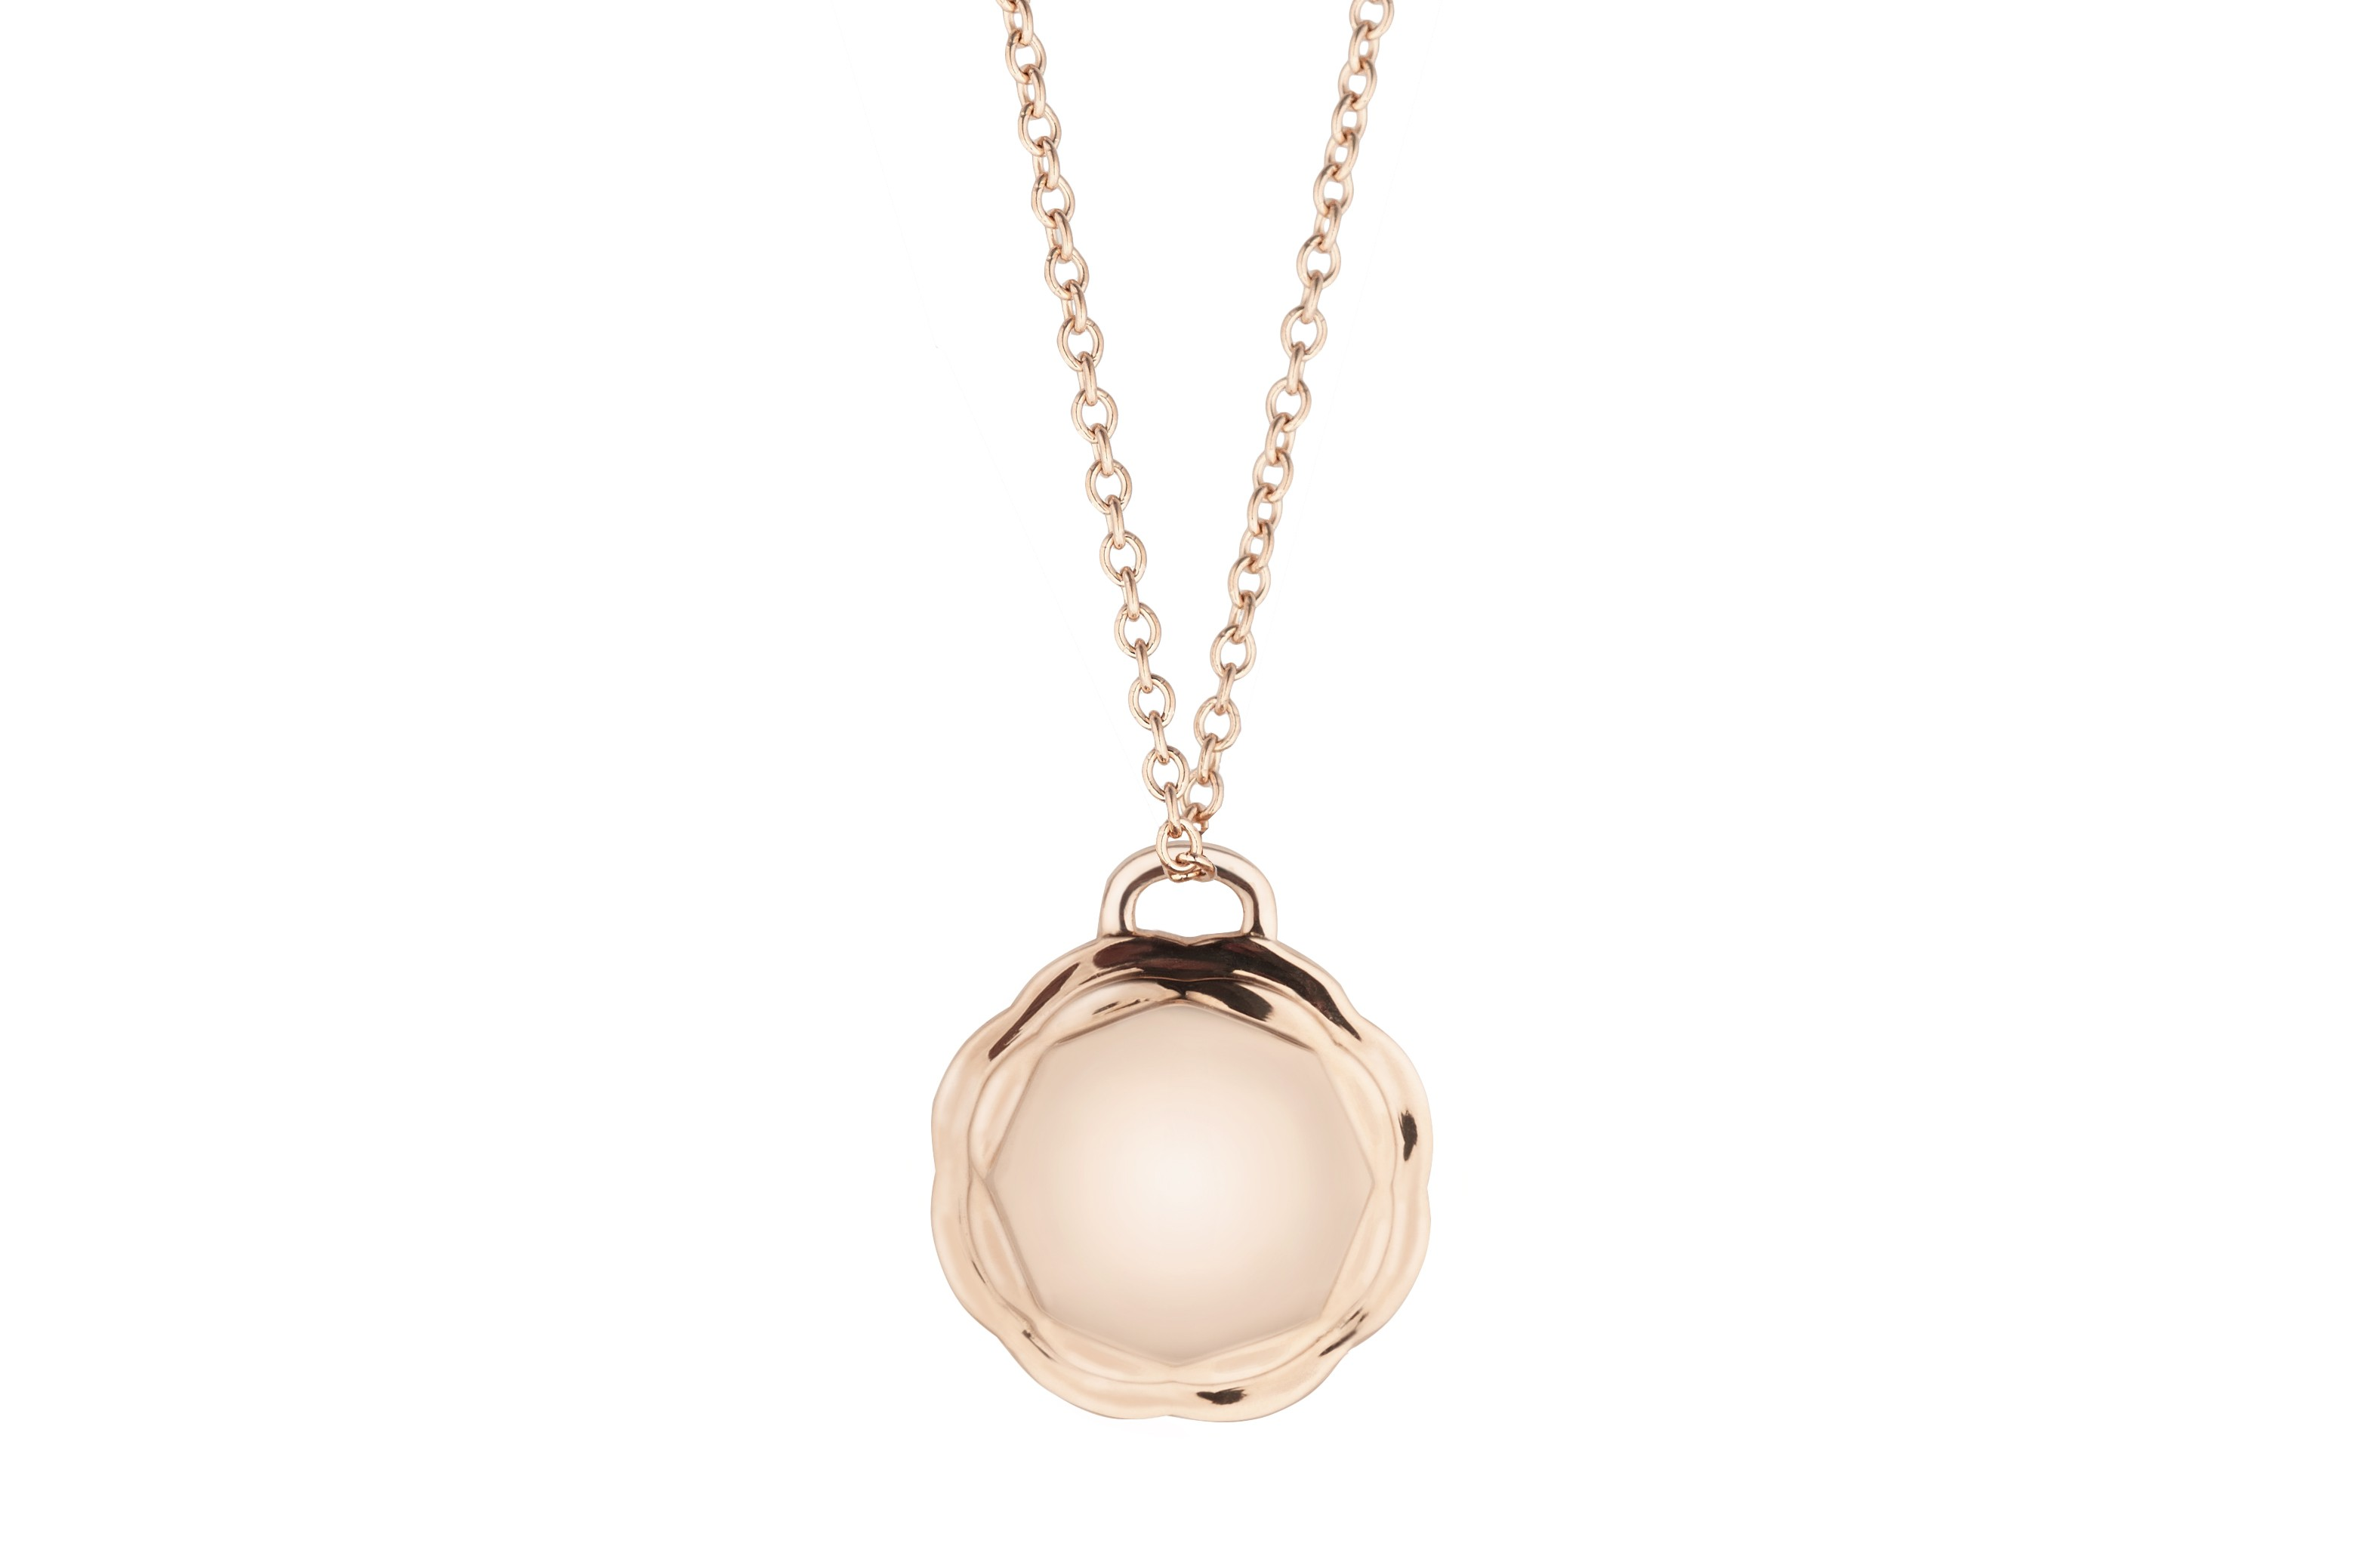 18K Rose Gold Flora Double Circle Pendant on AIDIA Extendable Link Chain